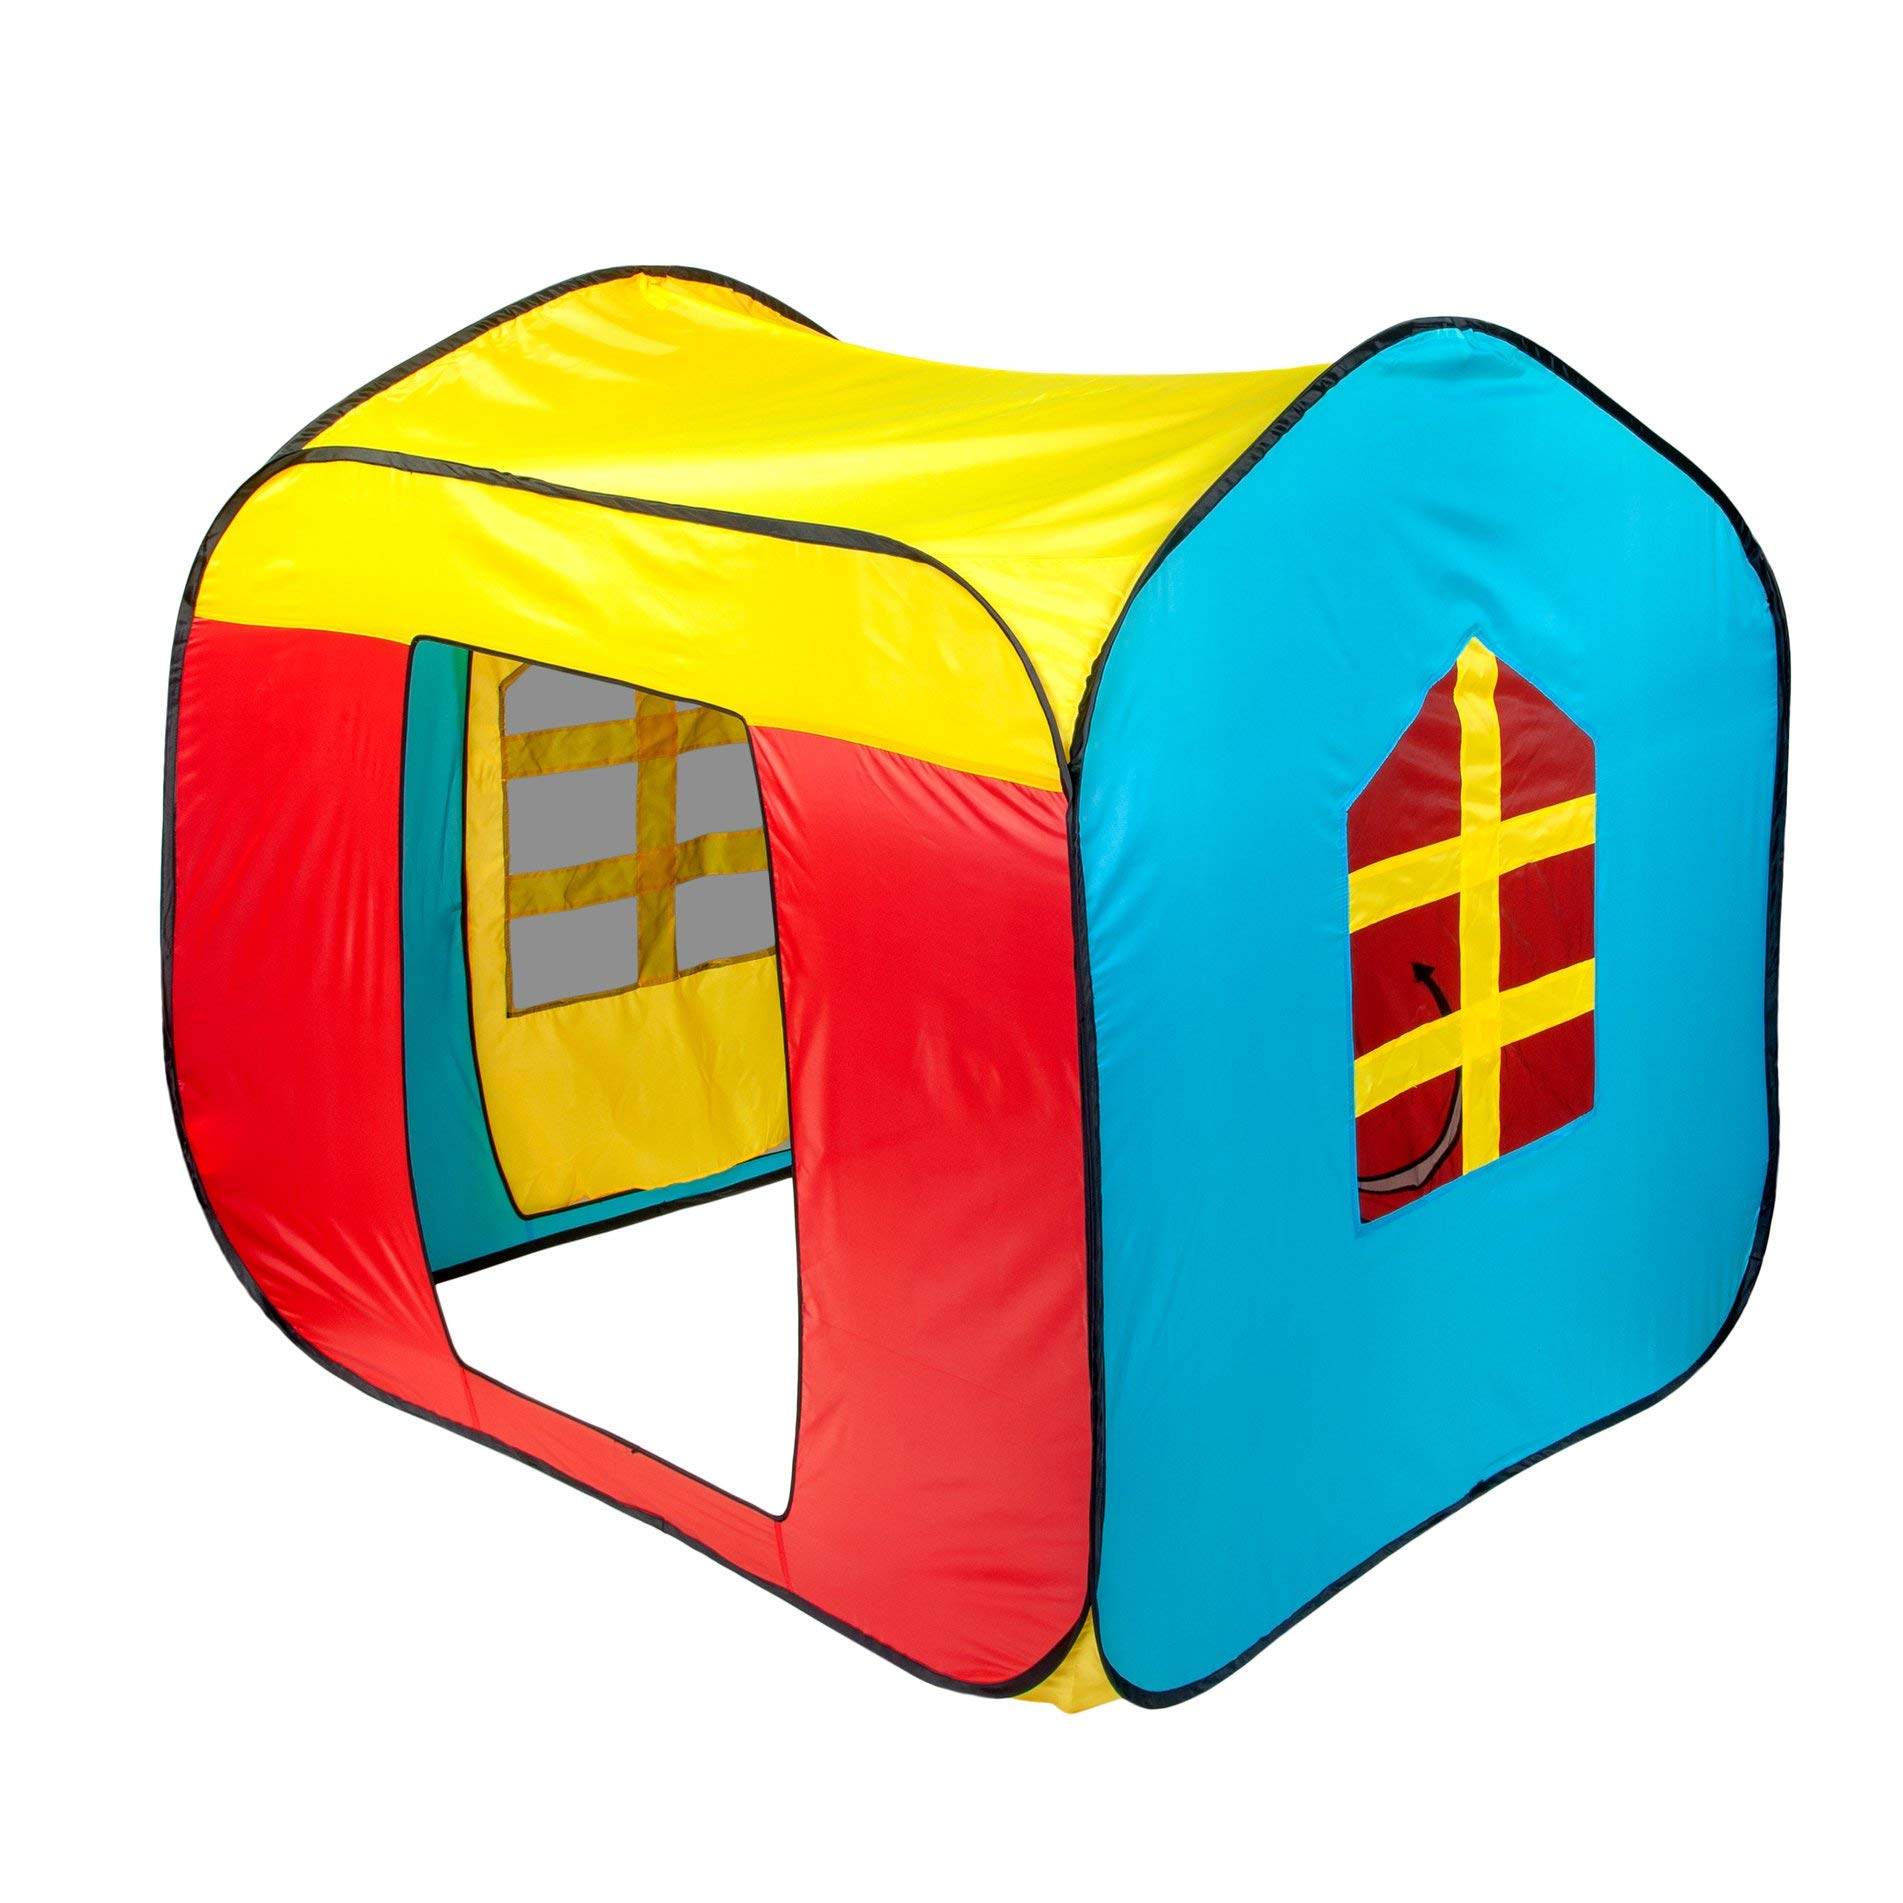 Explore Hut Super Play House Play Tent by Explore Hut